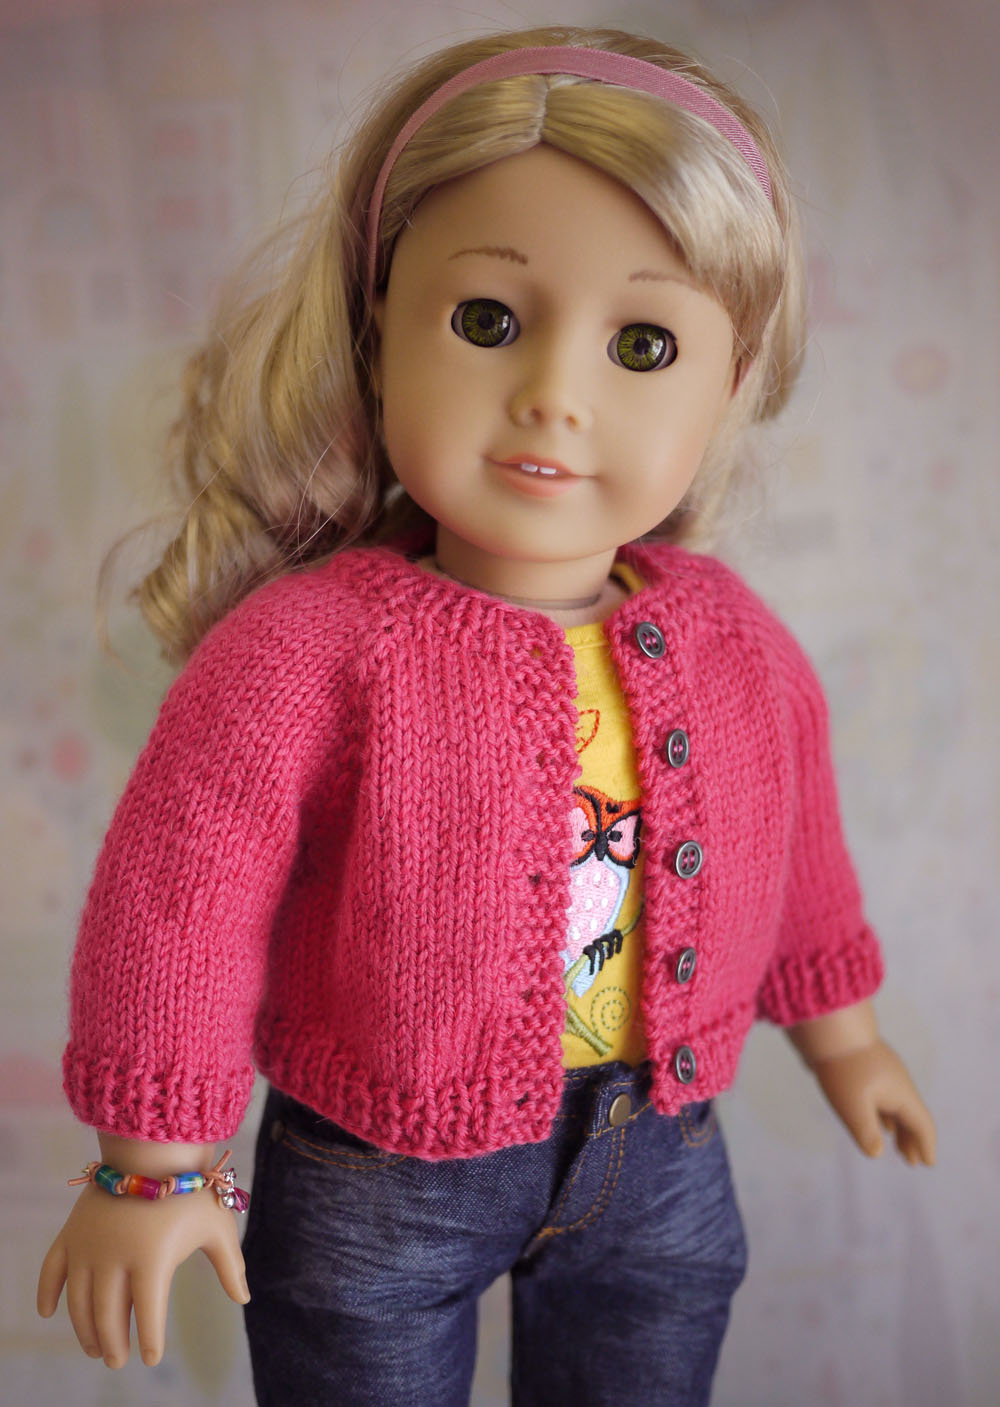 Crystal Palace Knitting Patterns : American Girl Doll Cardigan Sweater Knitting Pattern Cindy Rice Designs